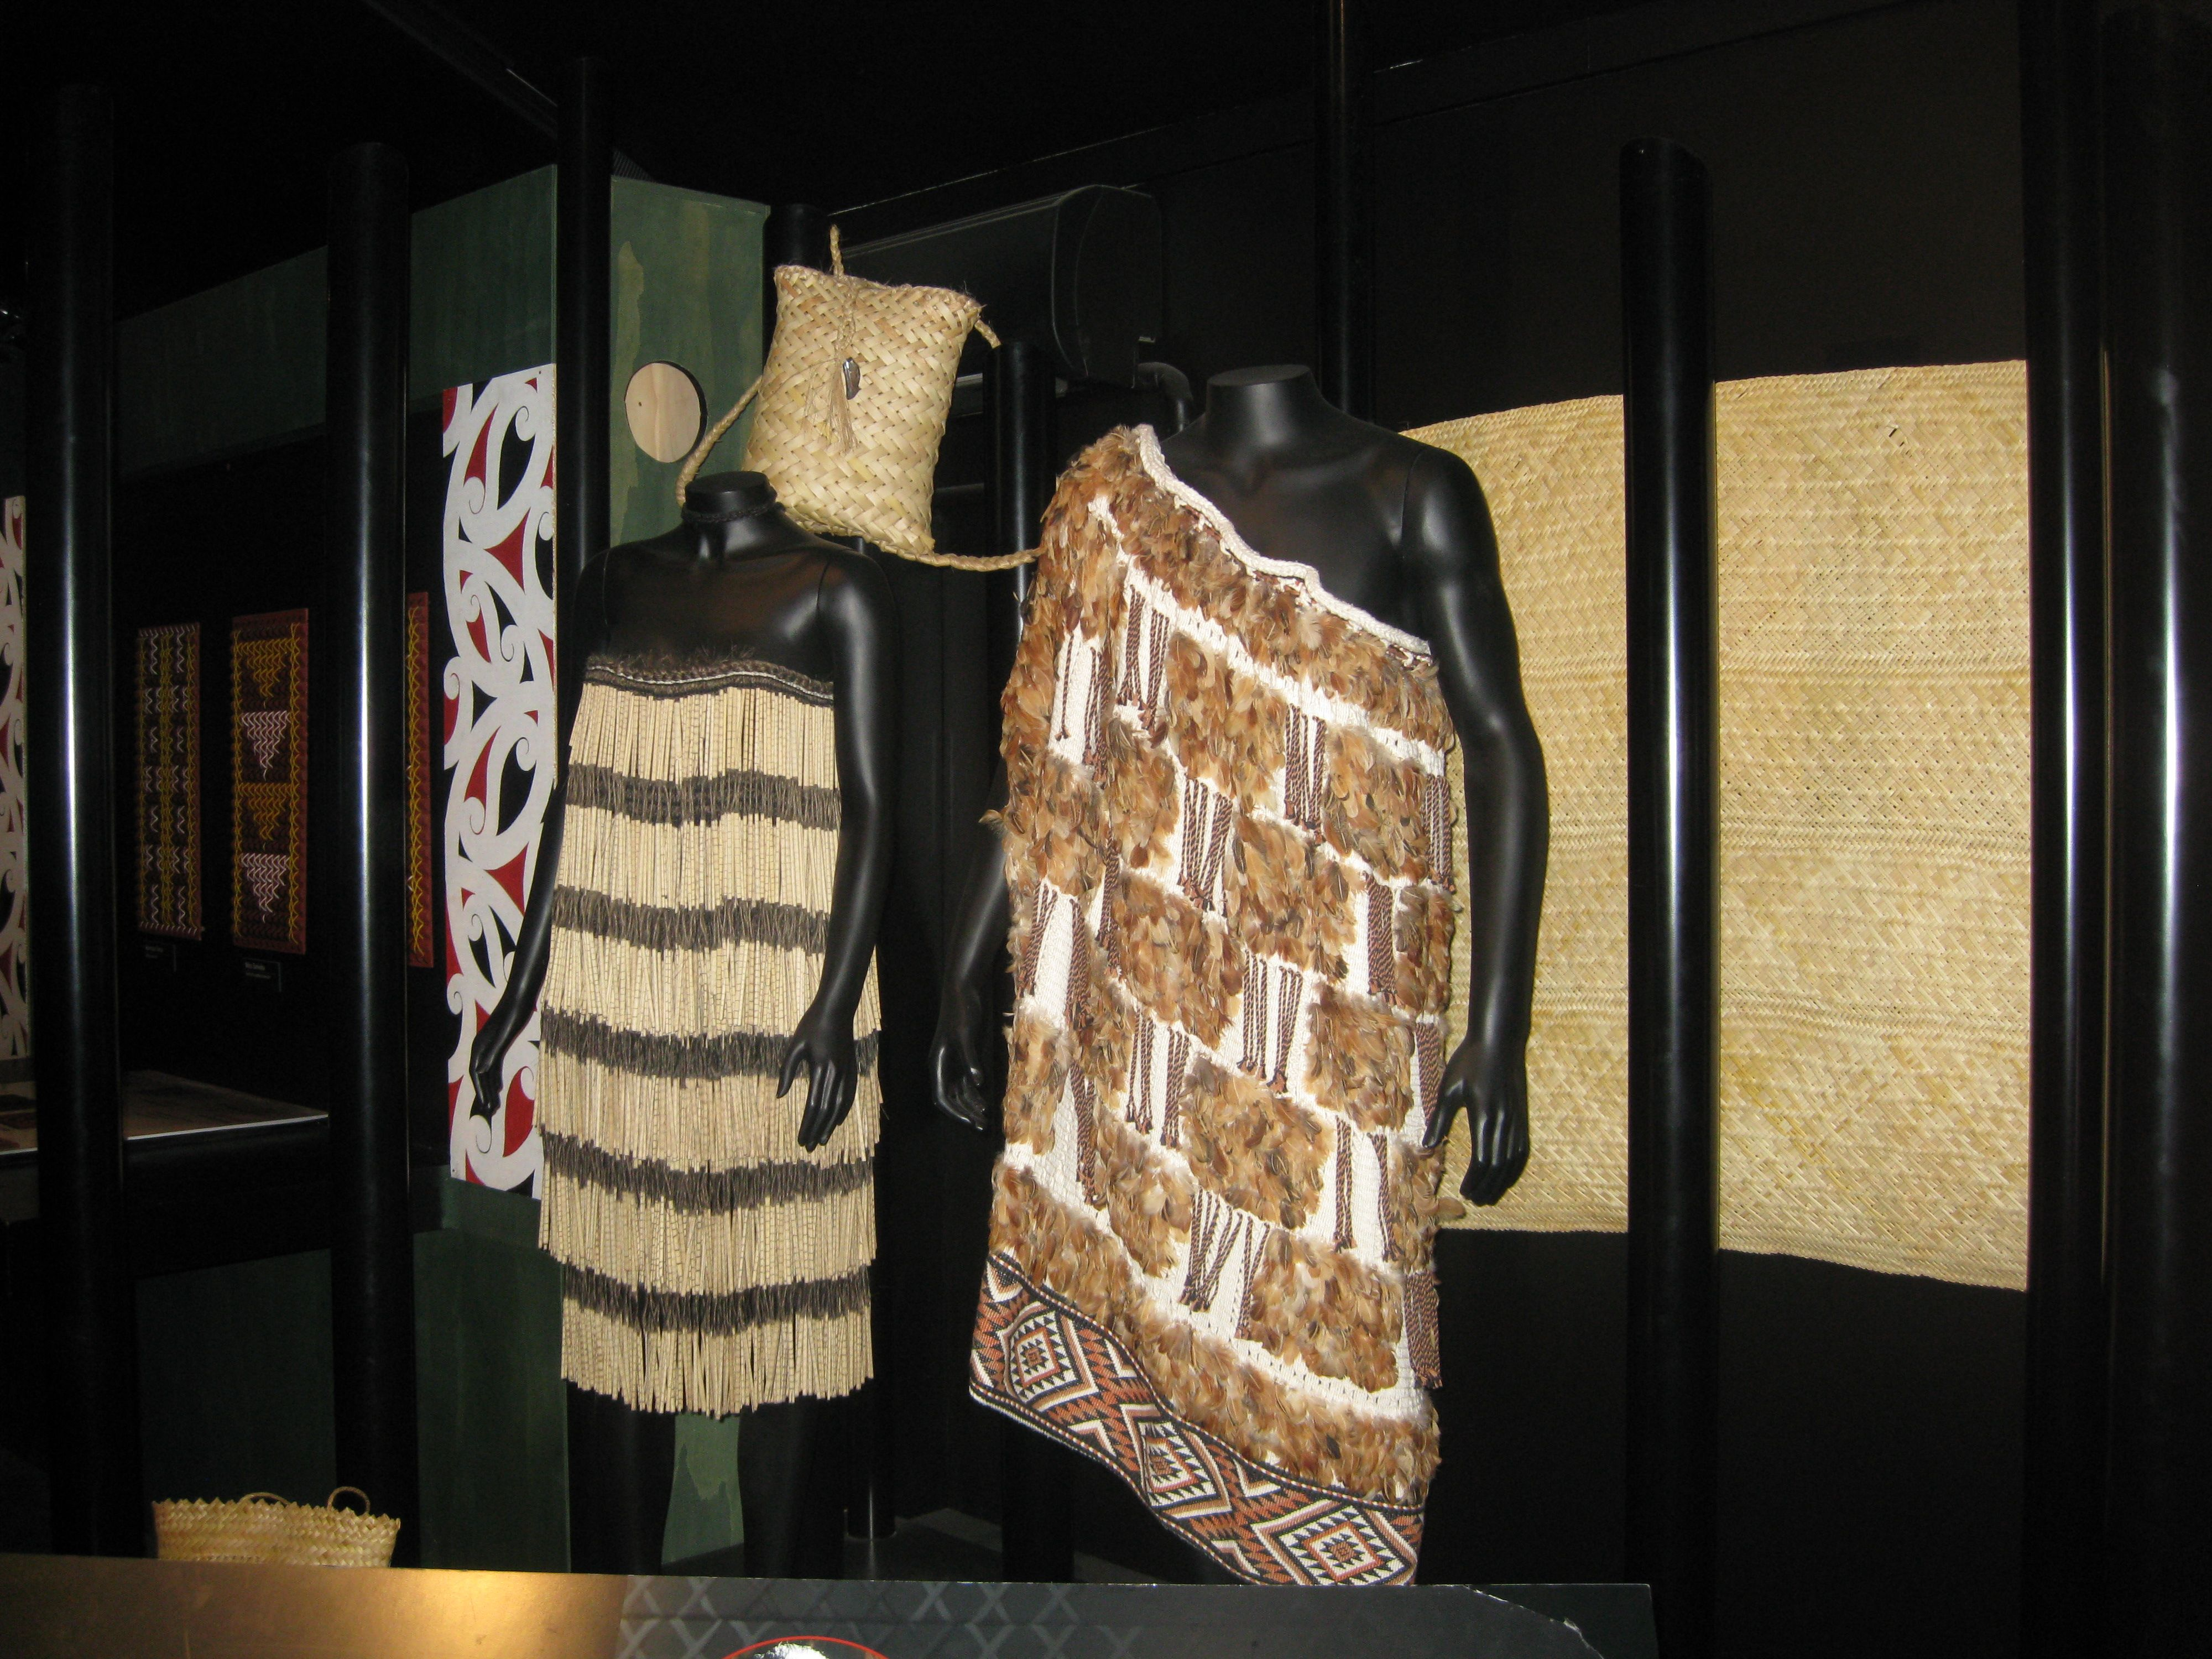 Maori Clothing: Traditional Maori Ceremonial Clothing In The Museum At Te